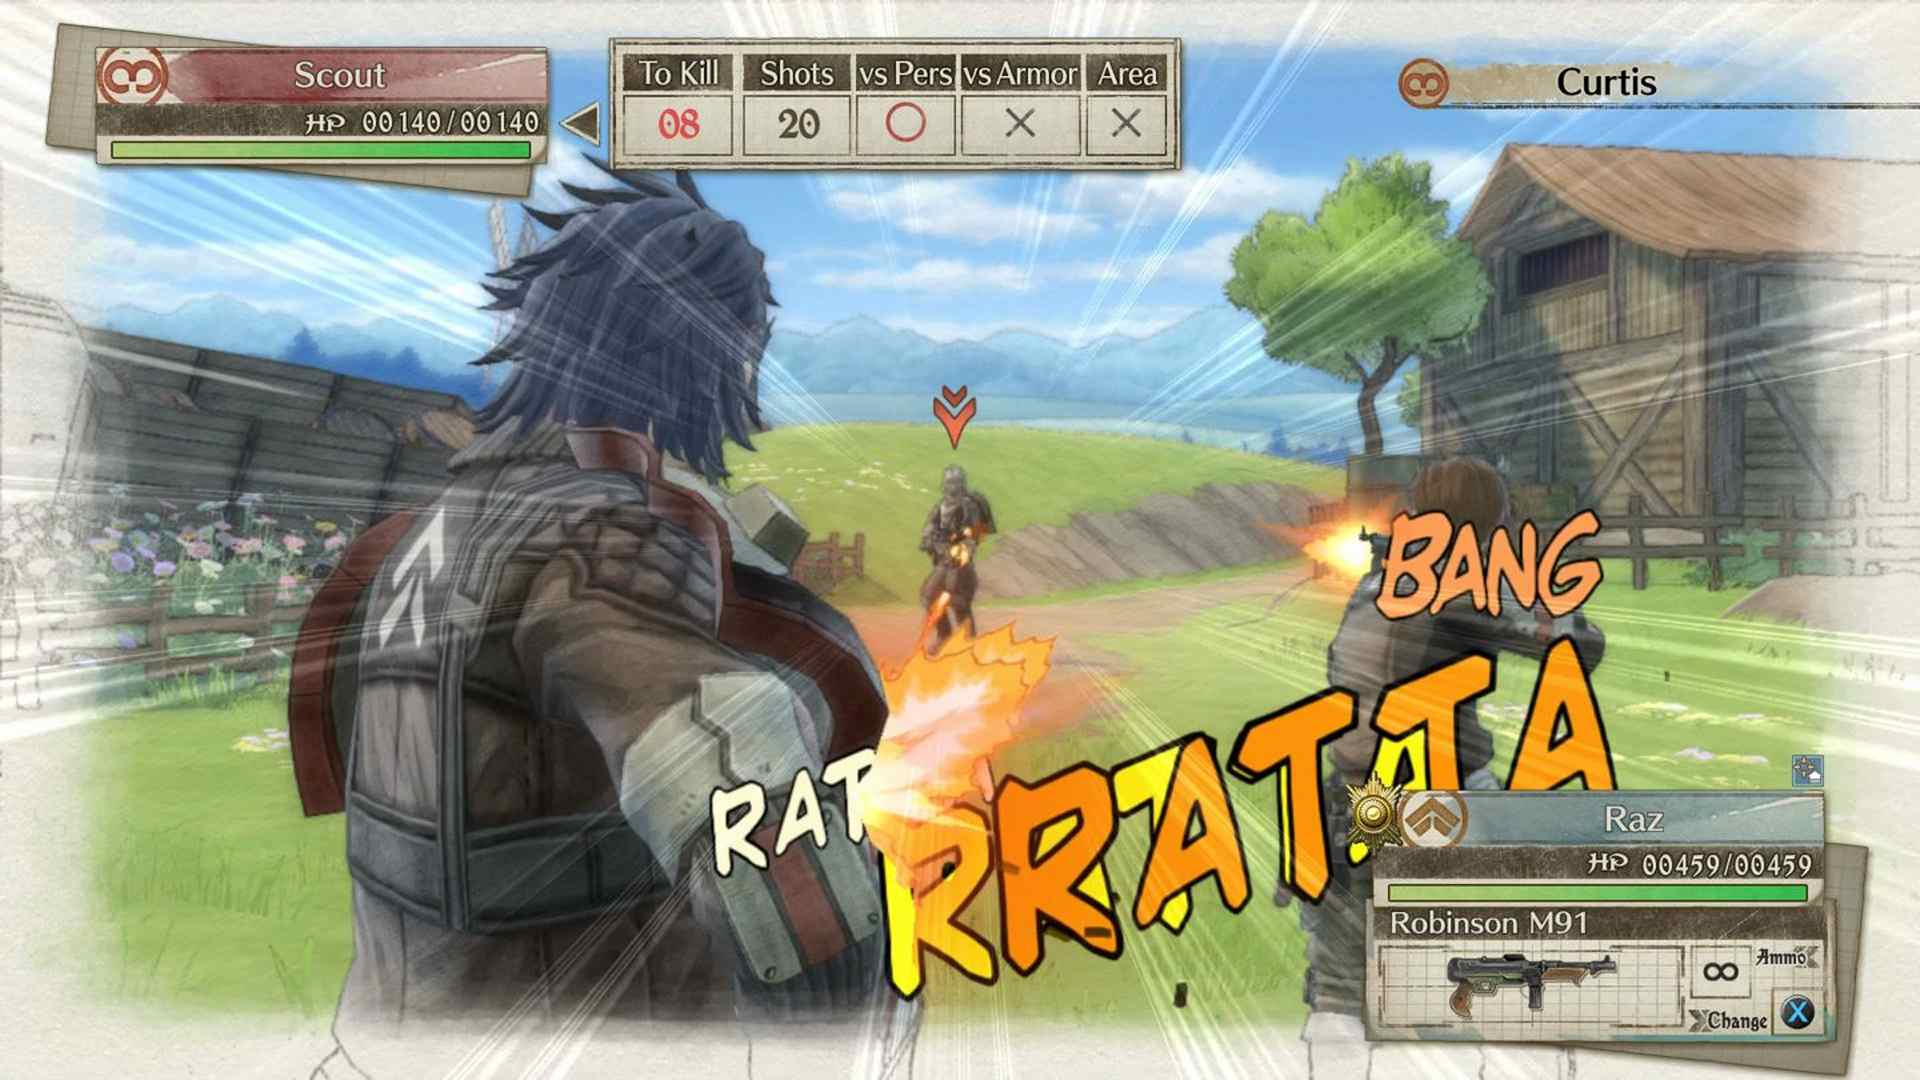 Valkyria Chronicles 4 offline strategy roleplaying vidoe game.